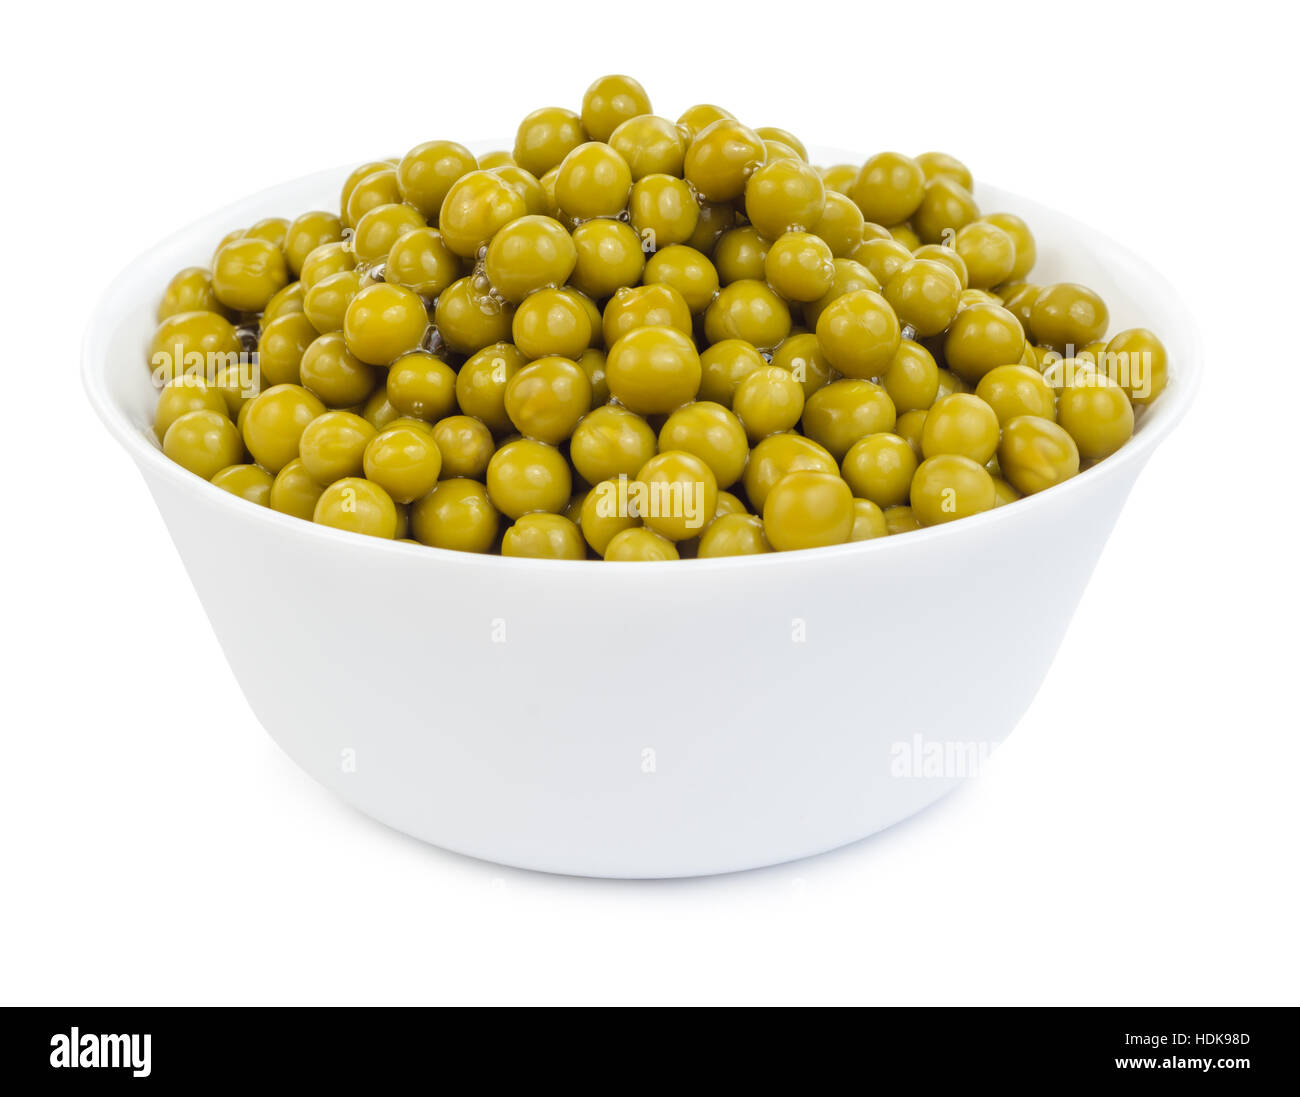 Marinated green peas in bowl isolated on white background. - Stock Image